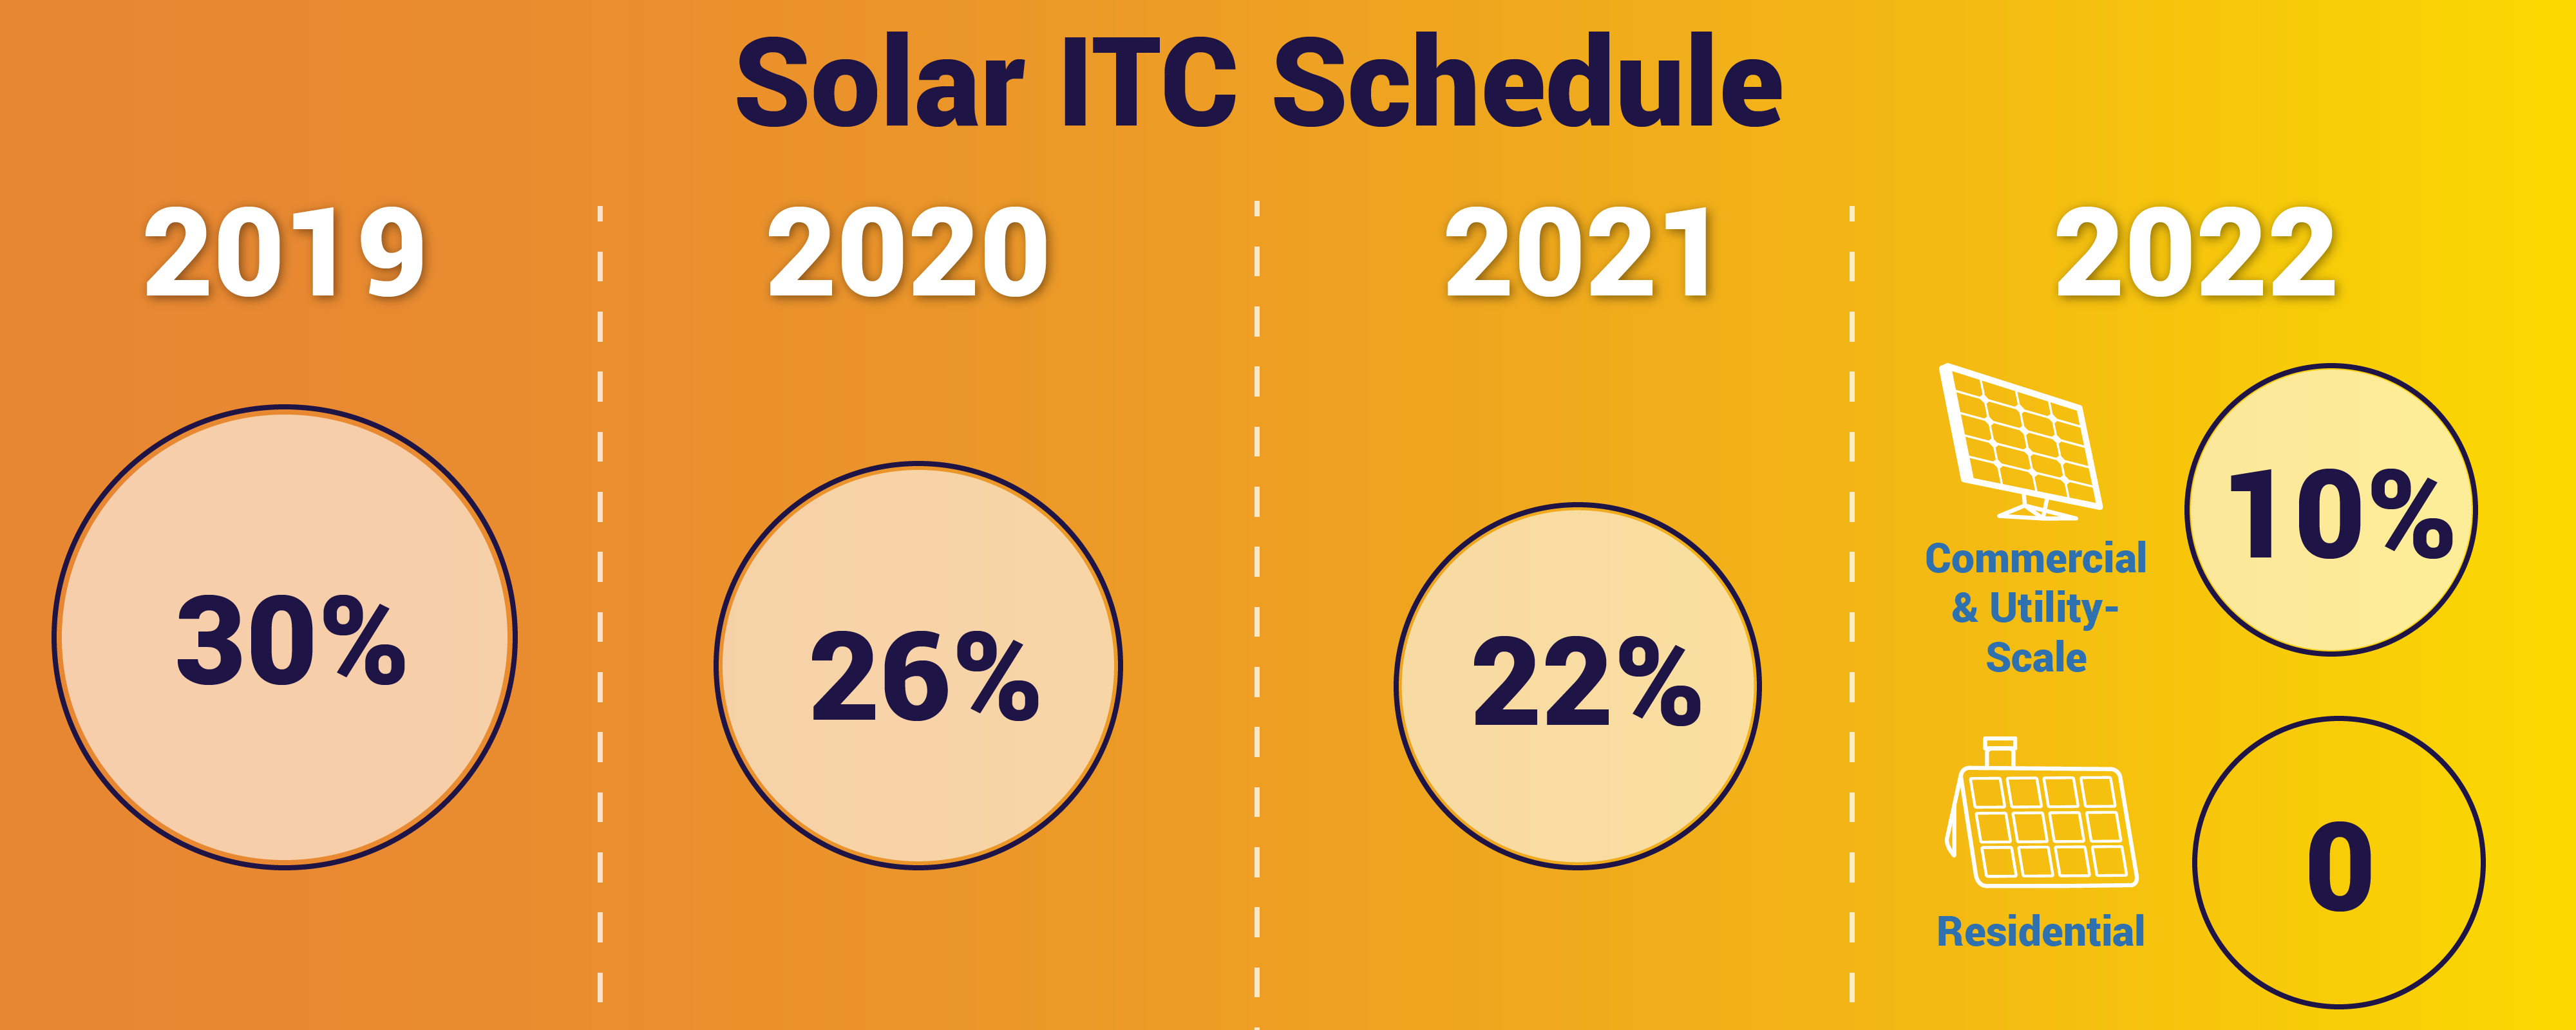 30% Tax Credit For Solar PV To Start Sunsetting at End of 2019